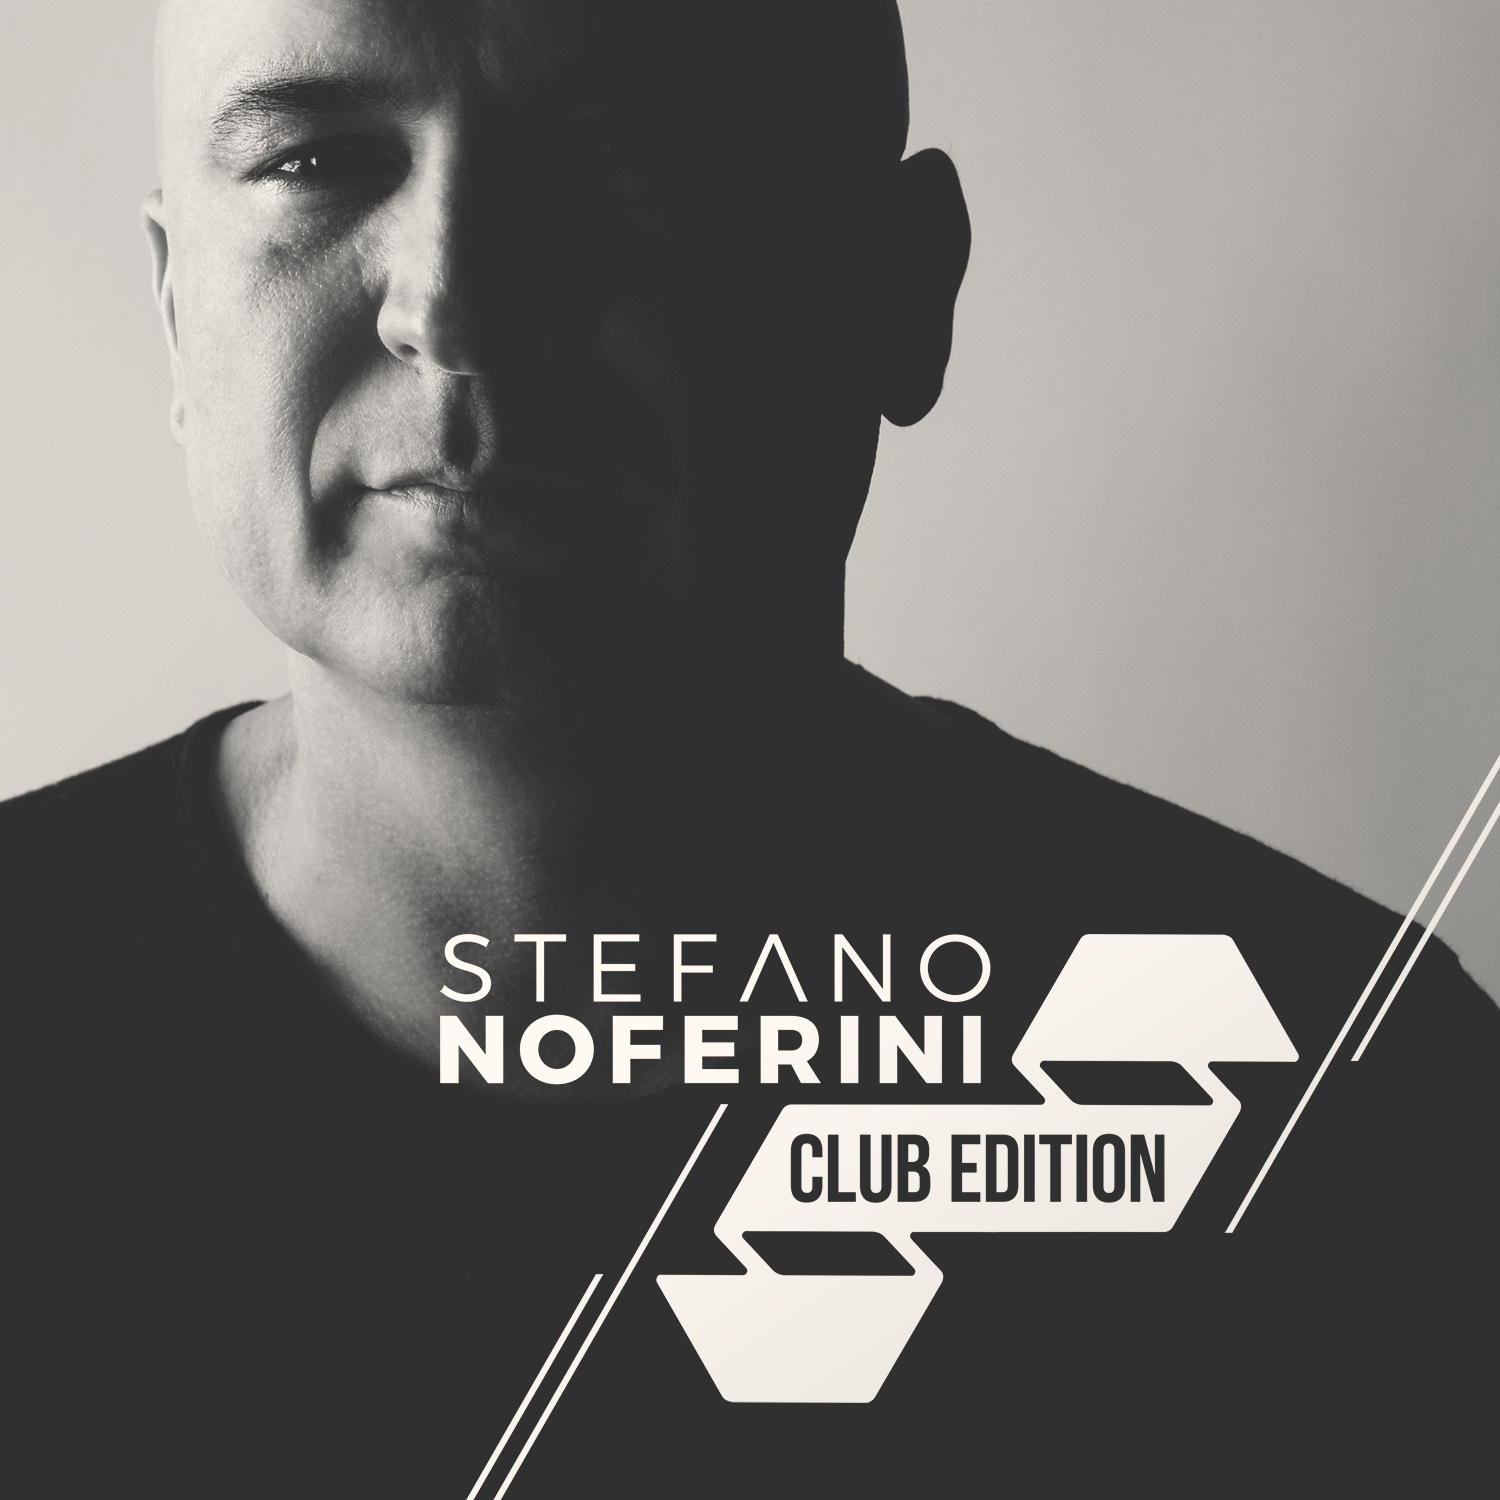 Delta Podcasts - Club Edition By Stefano Noferini (12.10.2017)